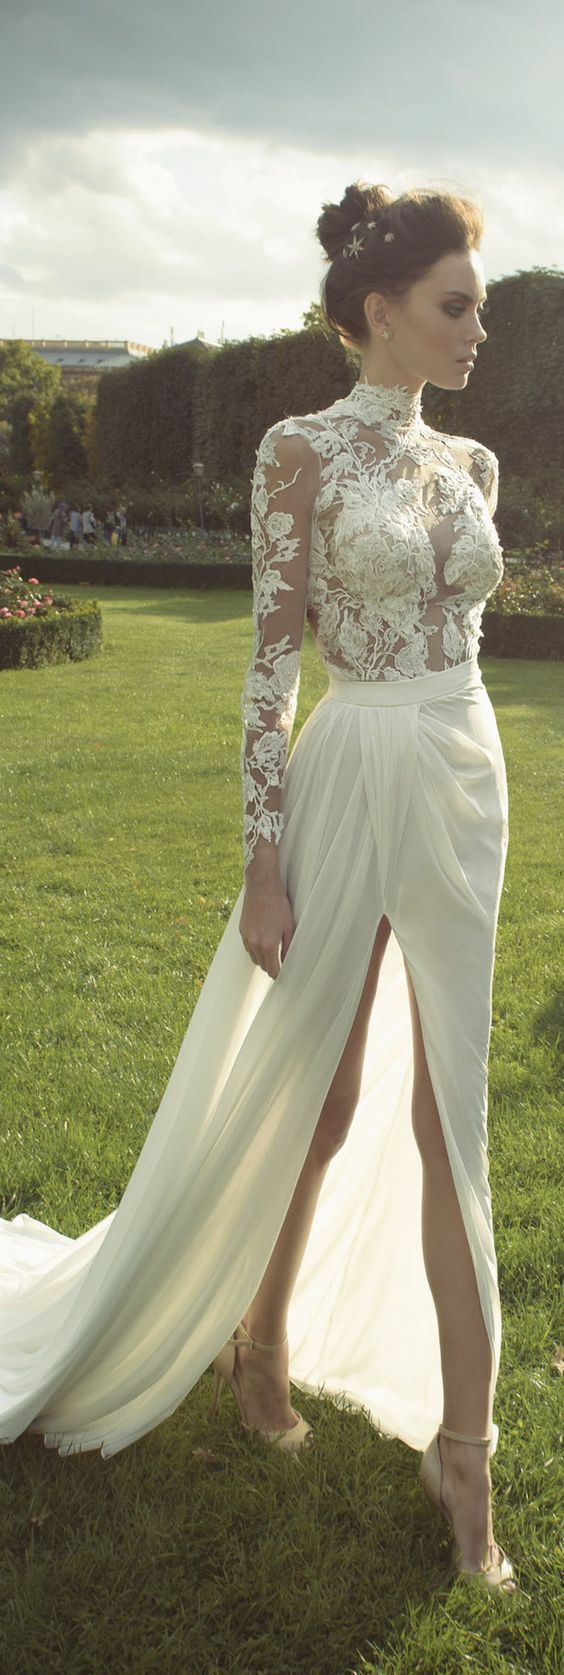 best wedding ideas images on pinterest night out dresses long